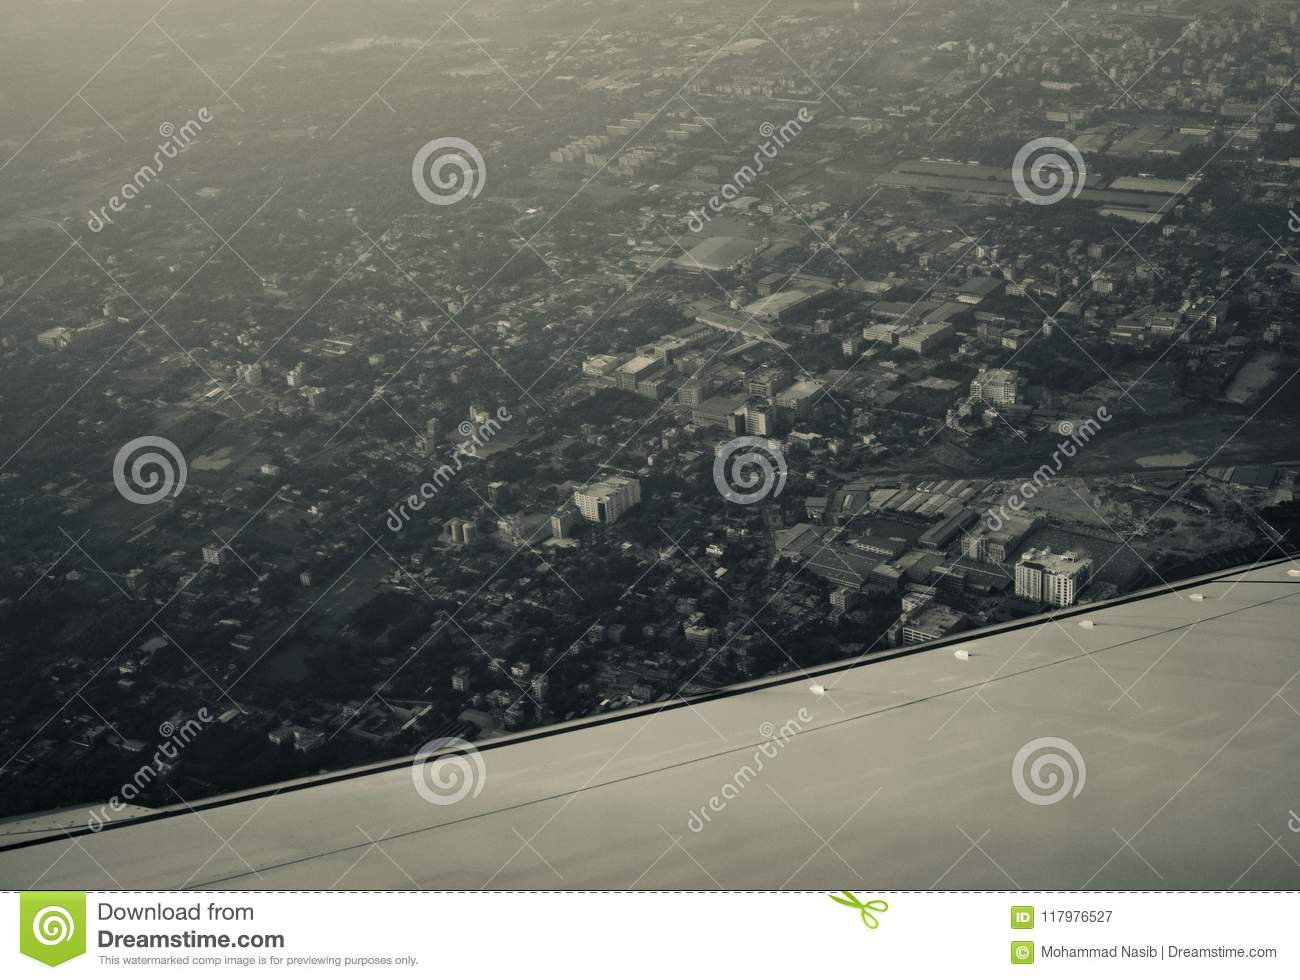 Download City Buildings View From The Aircraft Unique Blurry Photo Stock Image - Image of high, blurry: 117976527